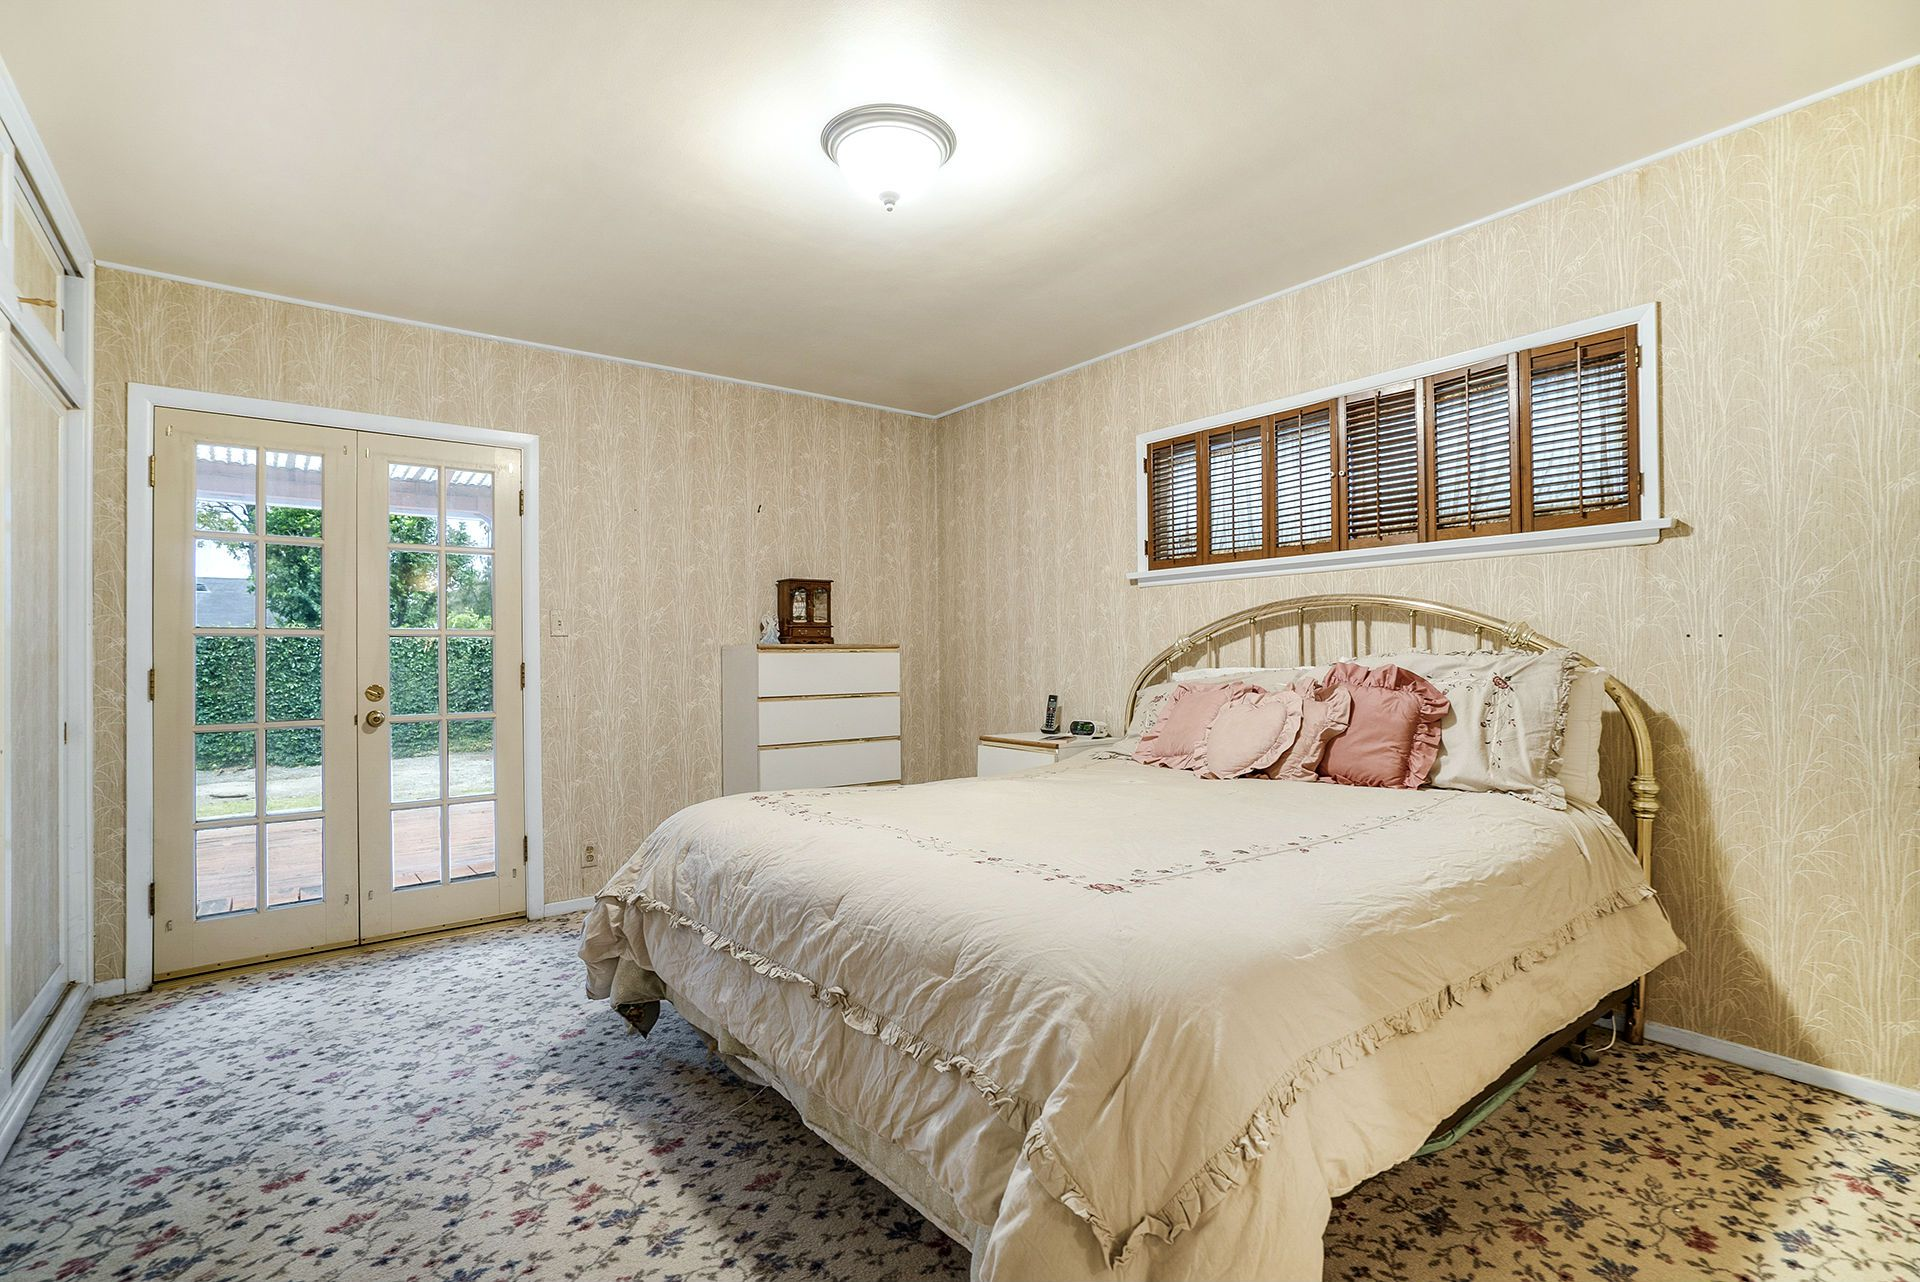 Master bedroom suite with French doors overlooking the deck and backyard.